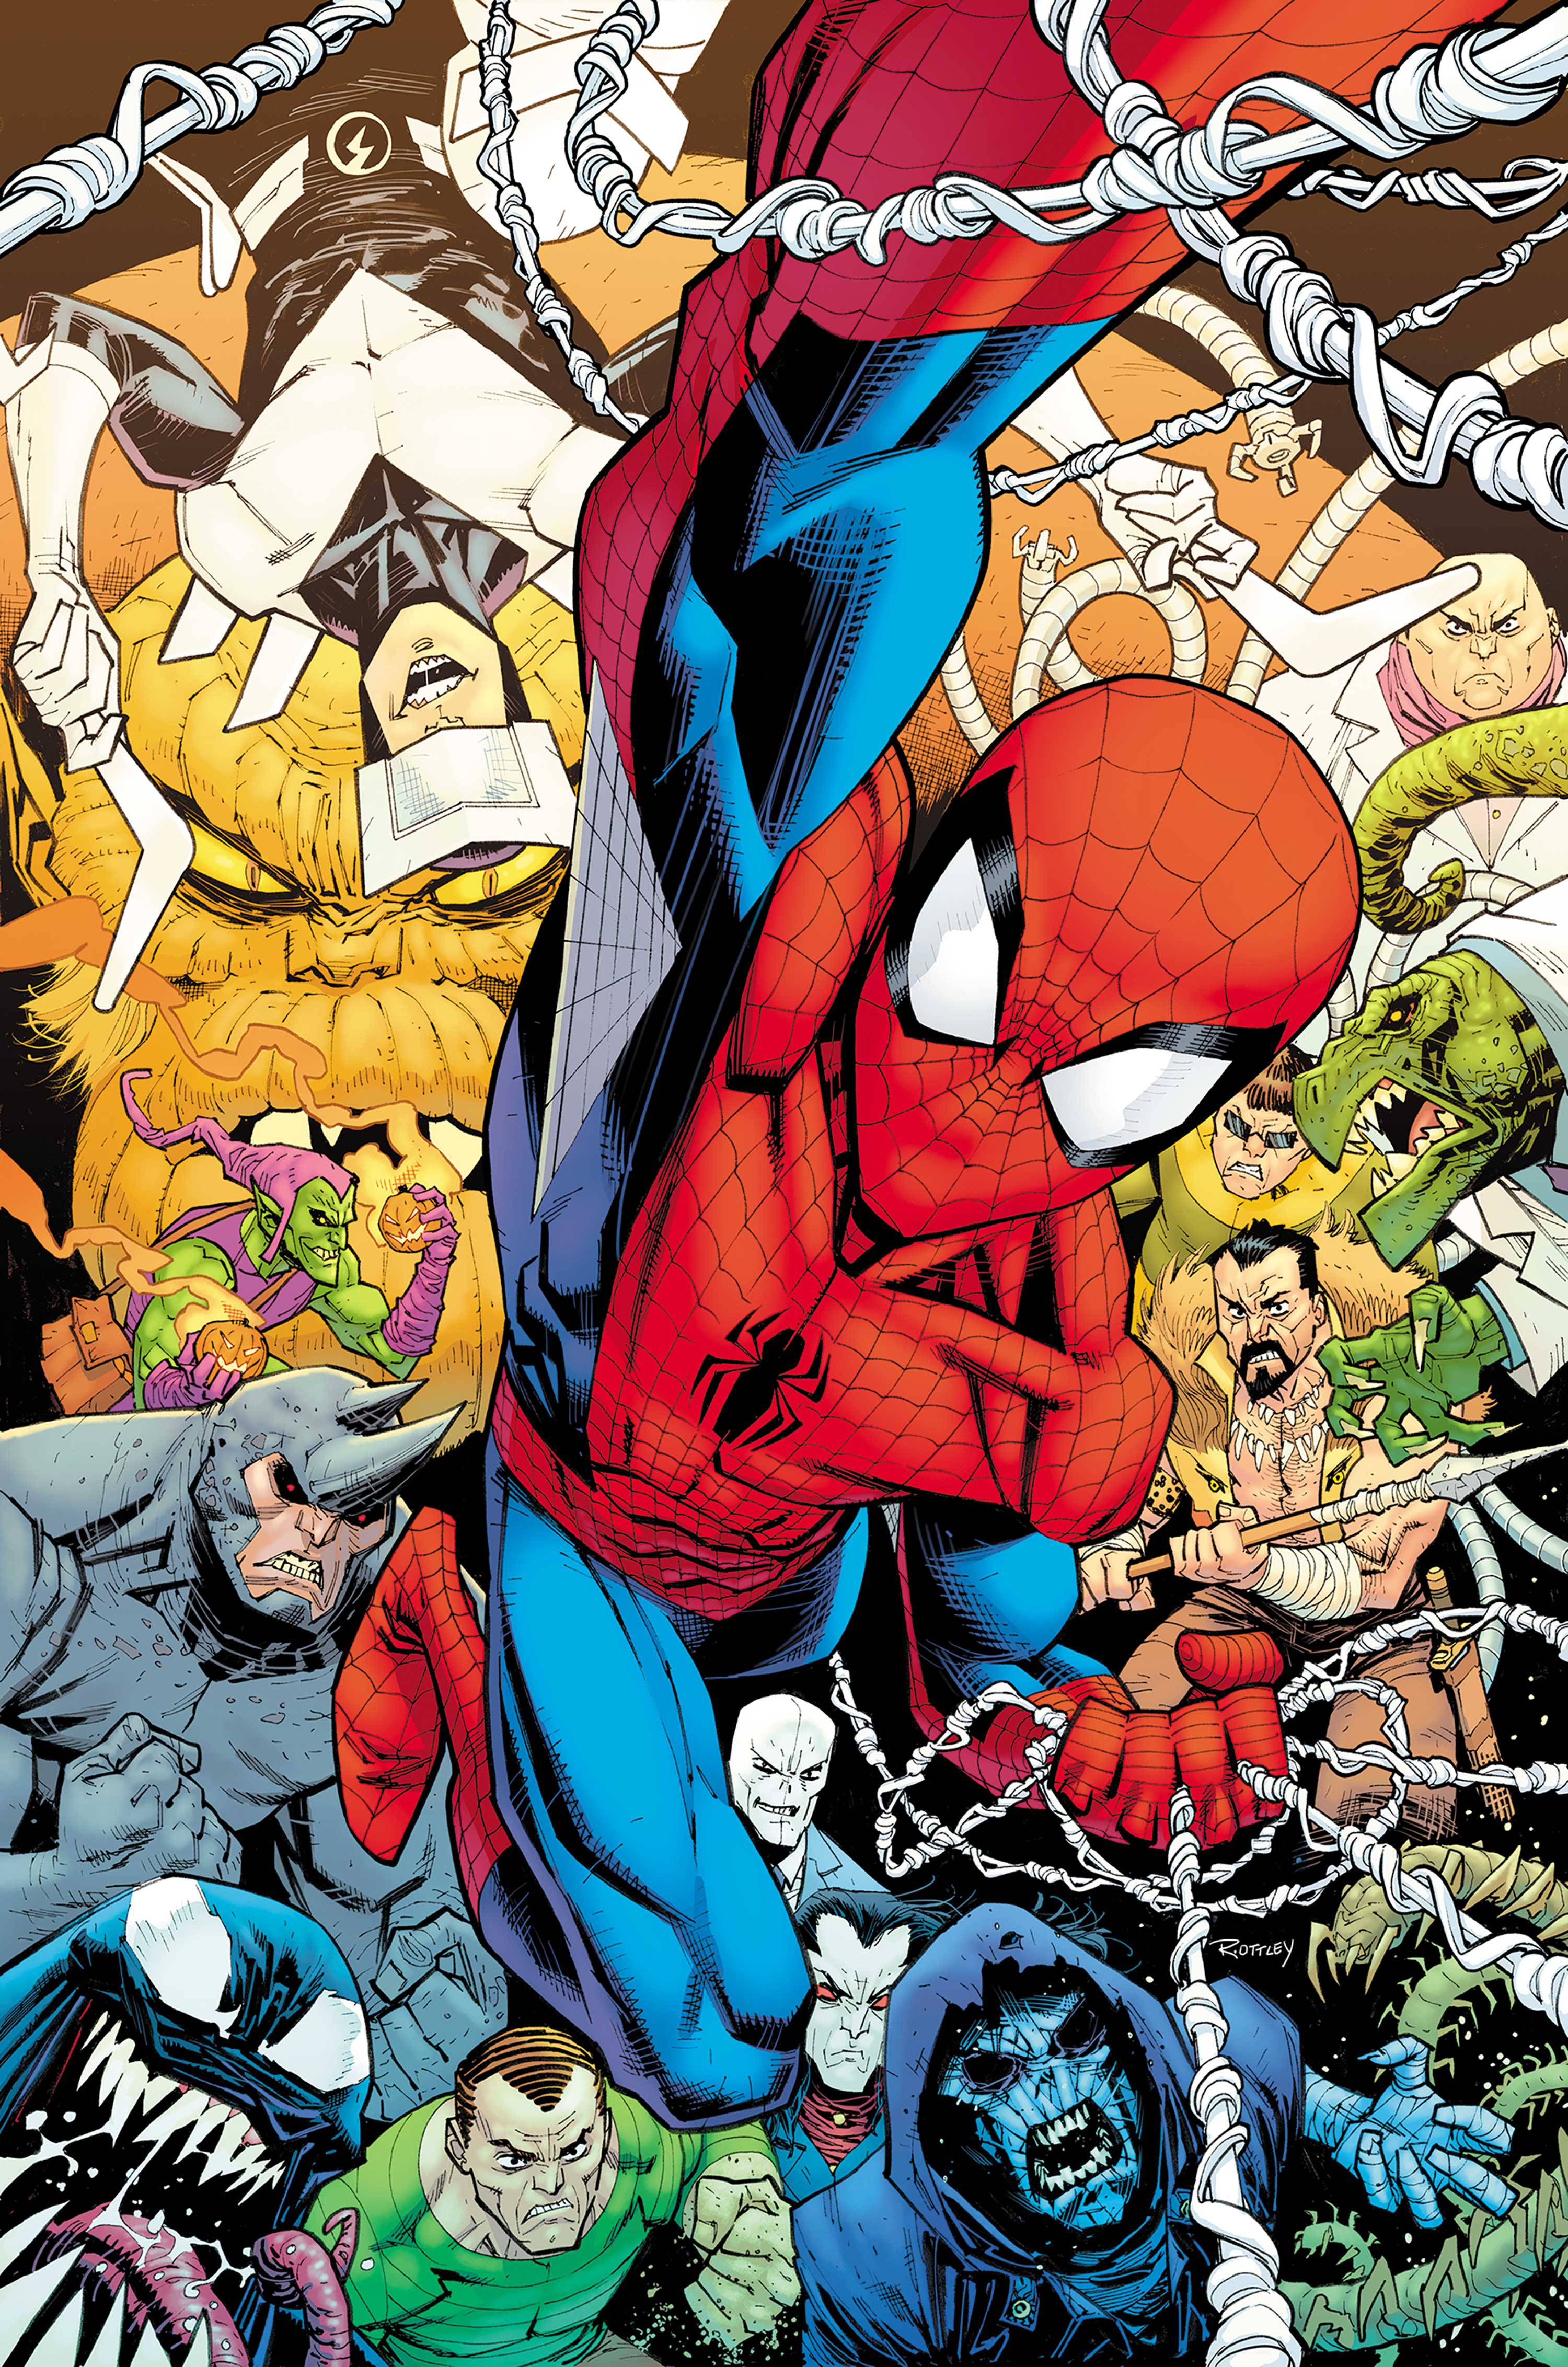 AMAZING SPIDER-MAN #850 BY RYAN OTTLEY POSTER